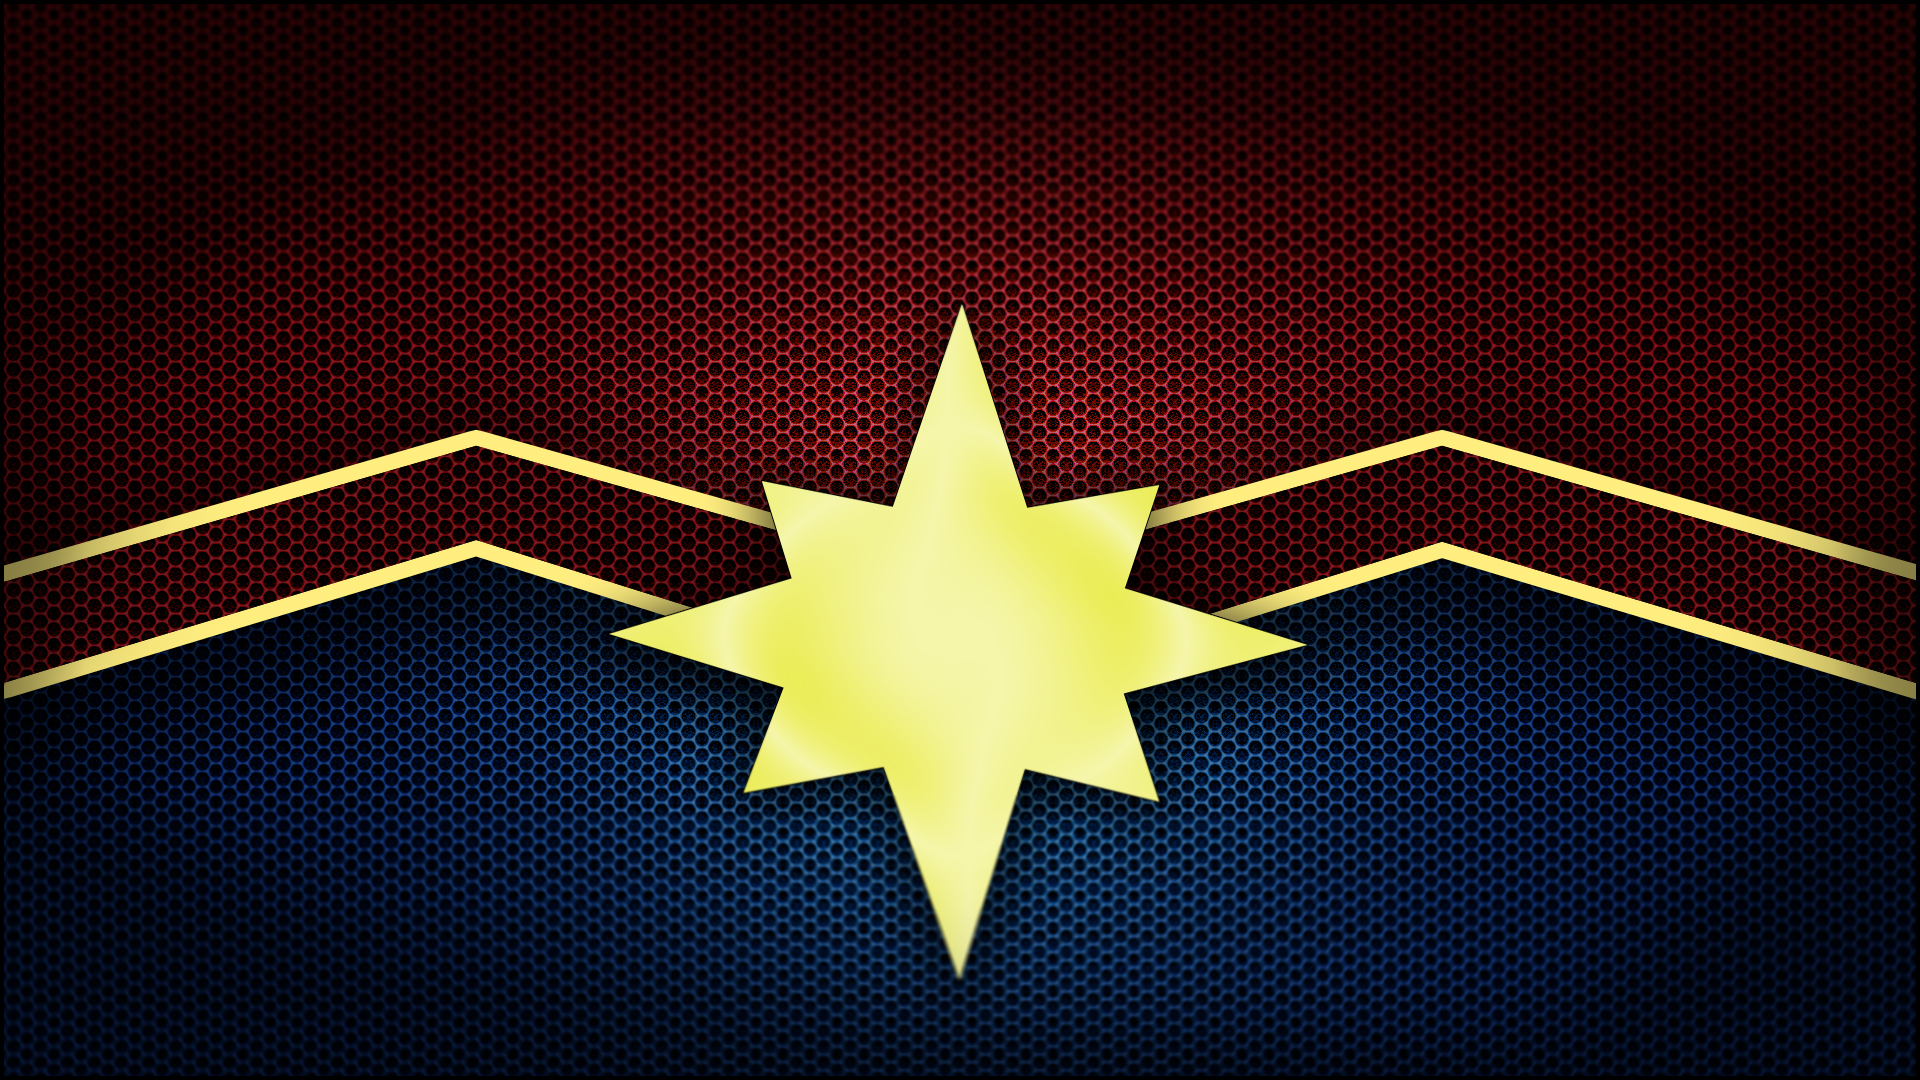 captain marvel logo, hd superheroes, 4k wallpapers, images